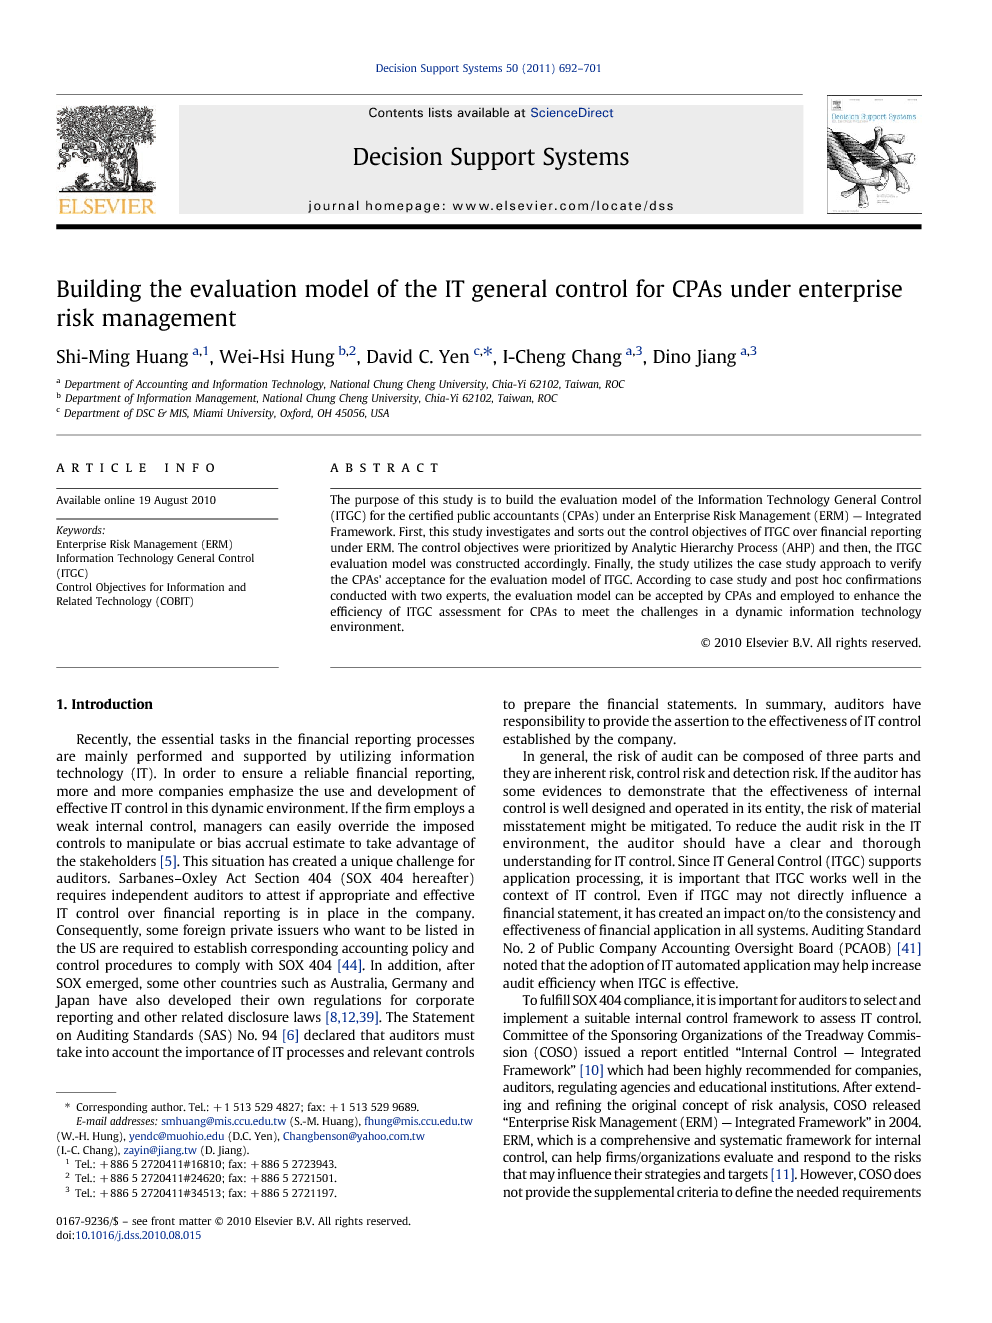 itgc case study The study utilizes the case study approach to verify the cpas' acceptance for the evaluation model of itgc according to case study.